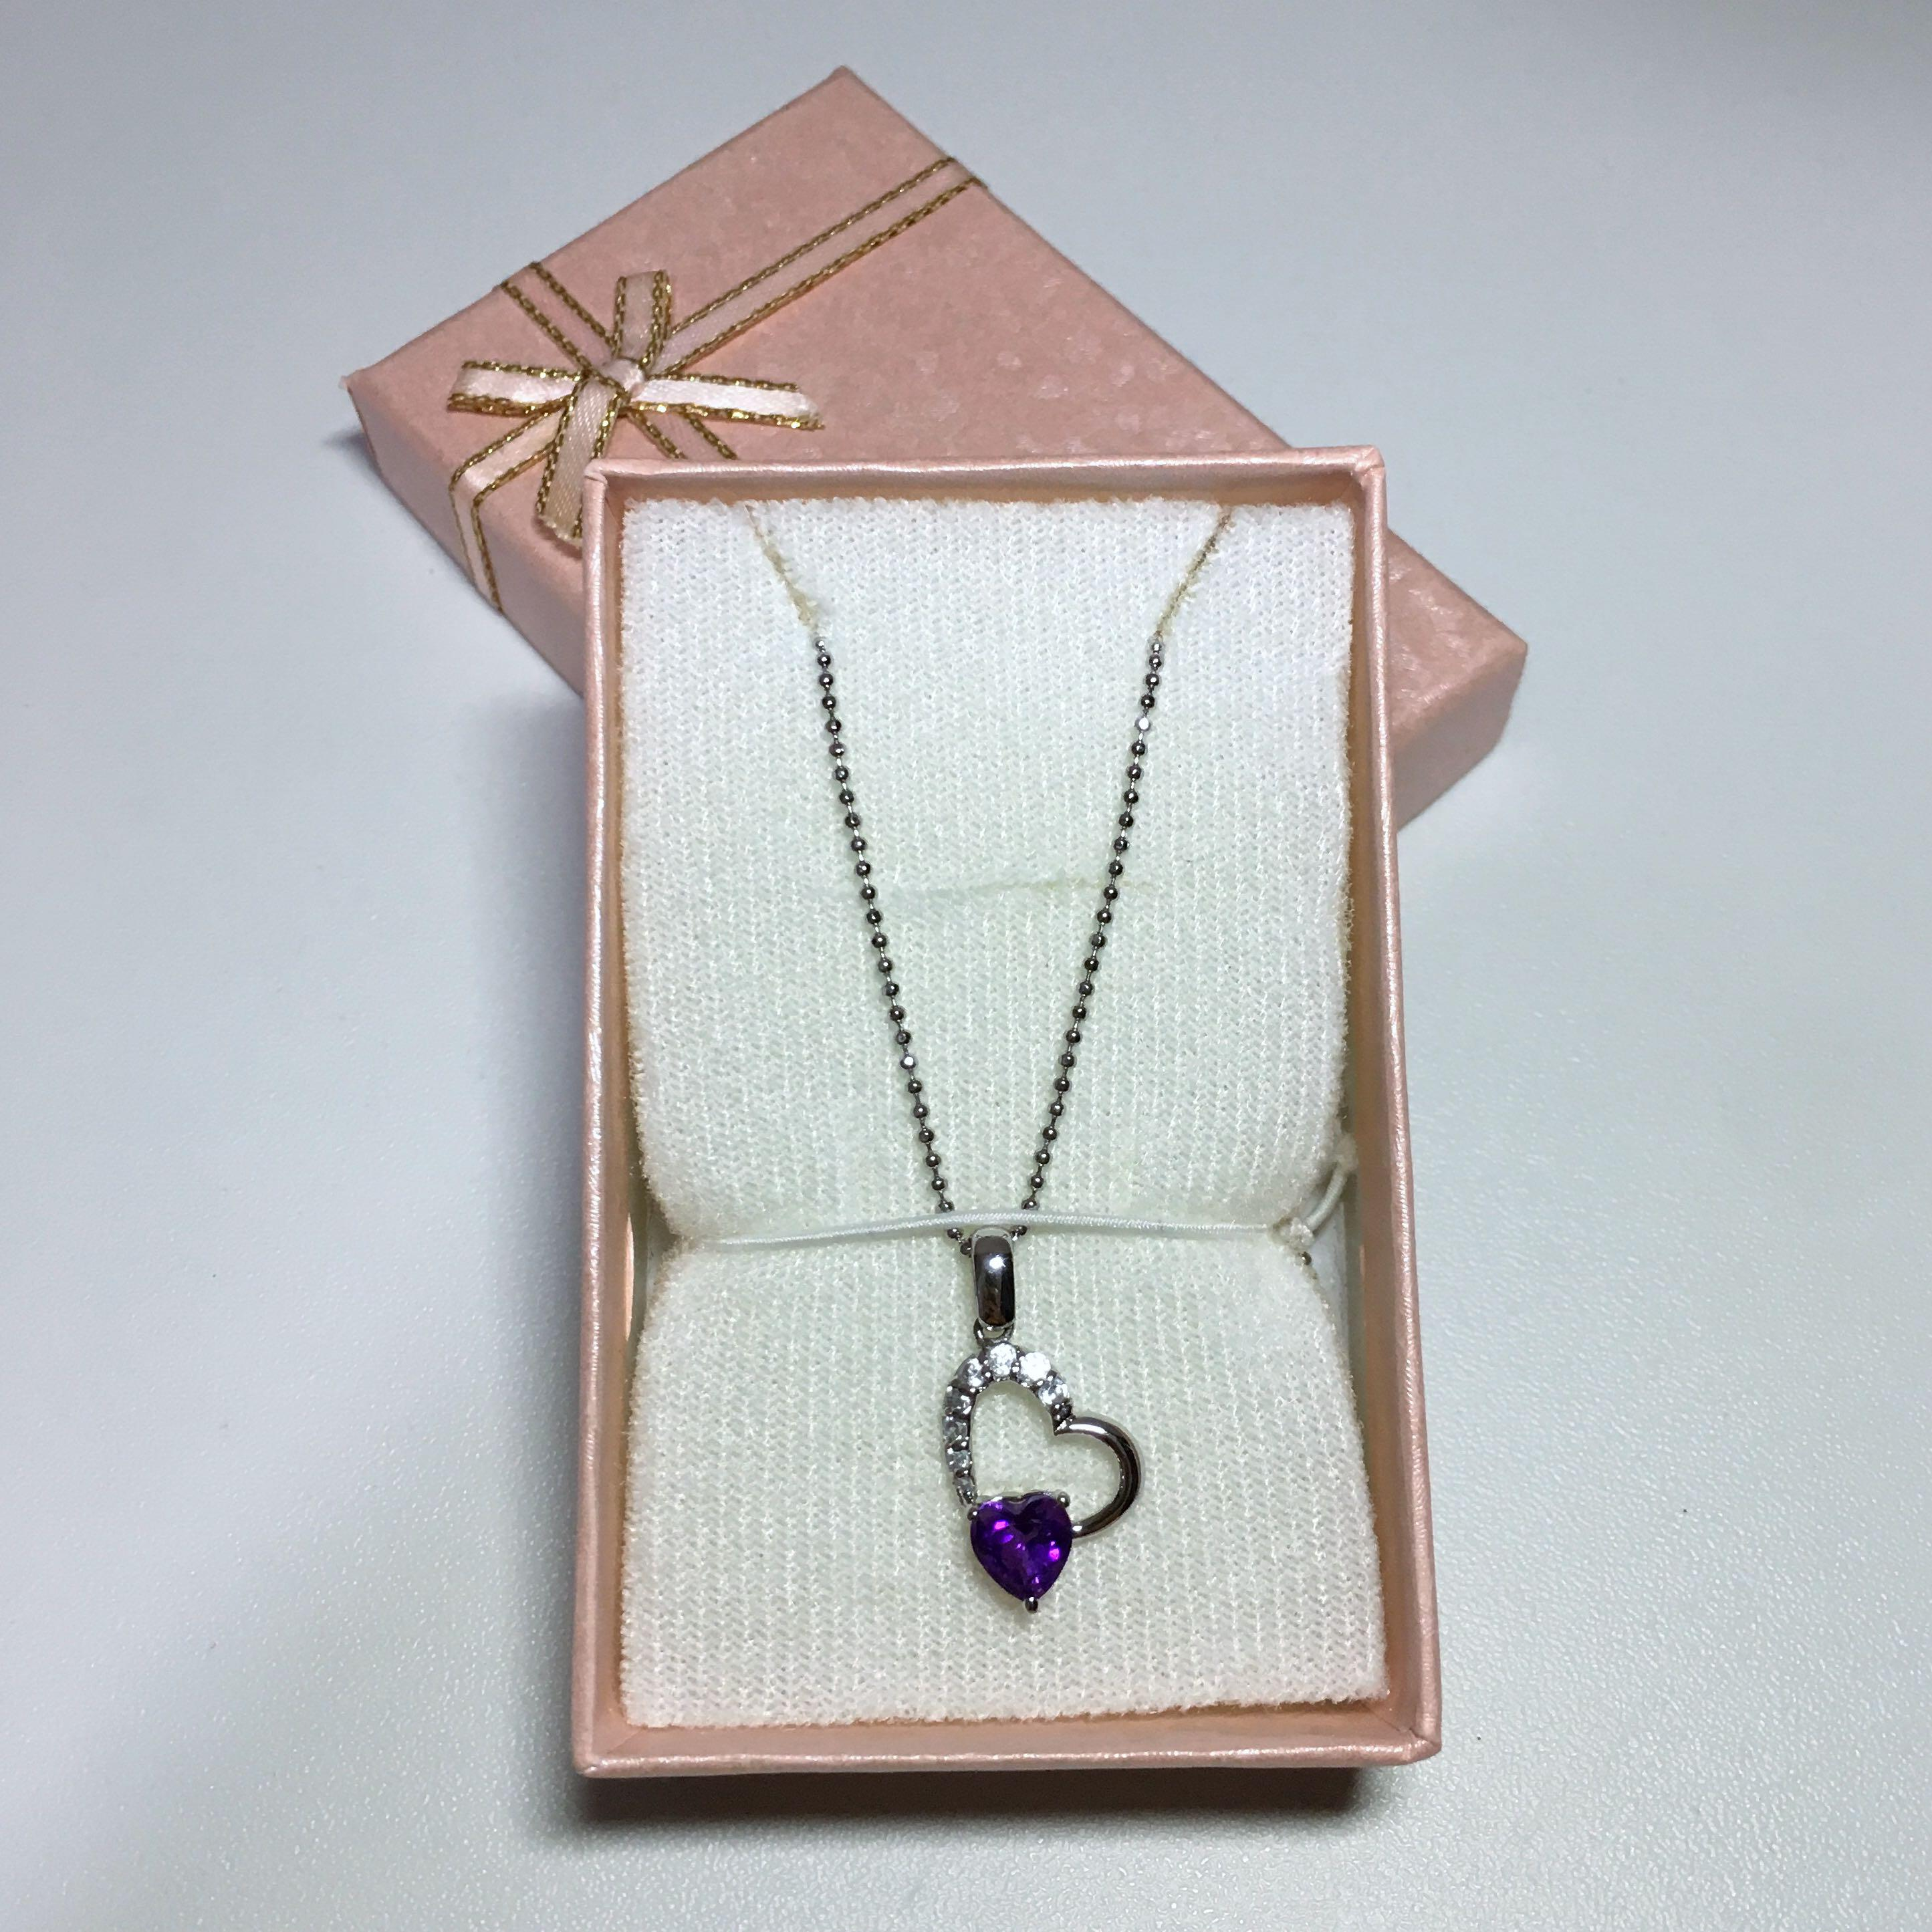 Authentic Amethyst Necklace from Korea